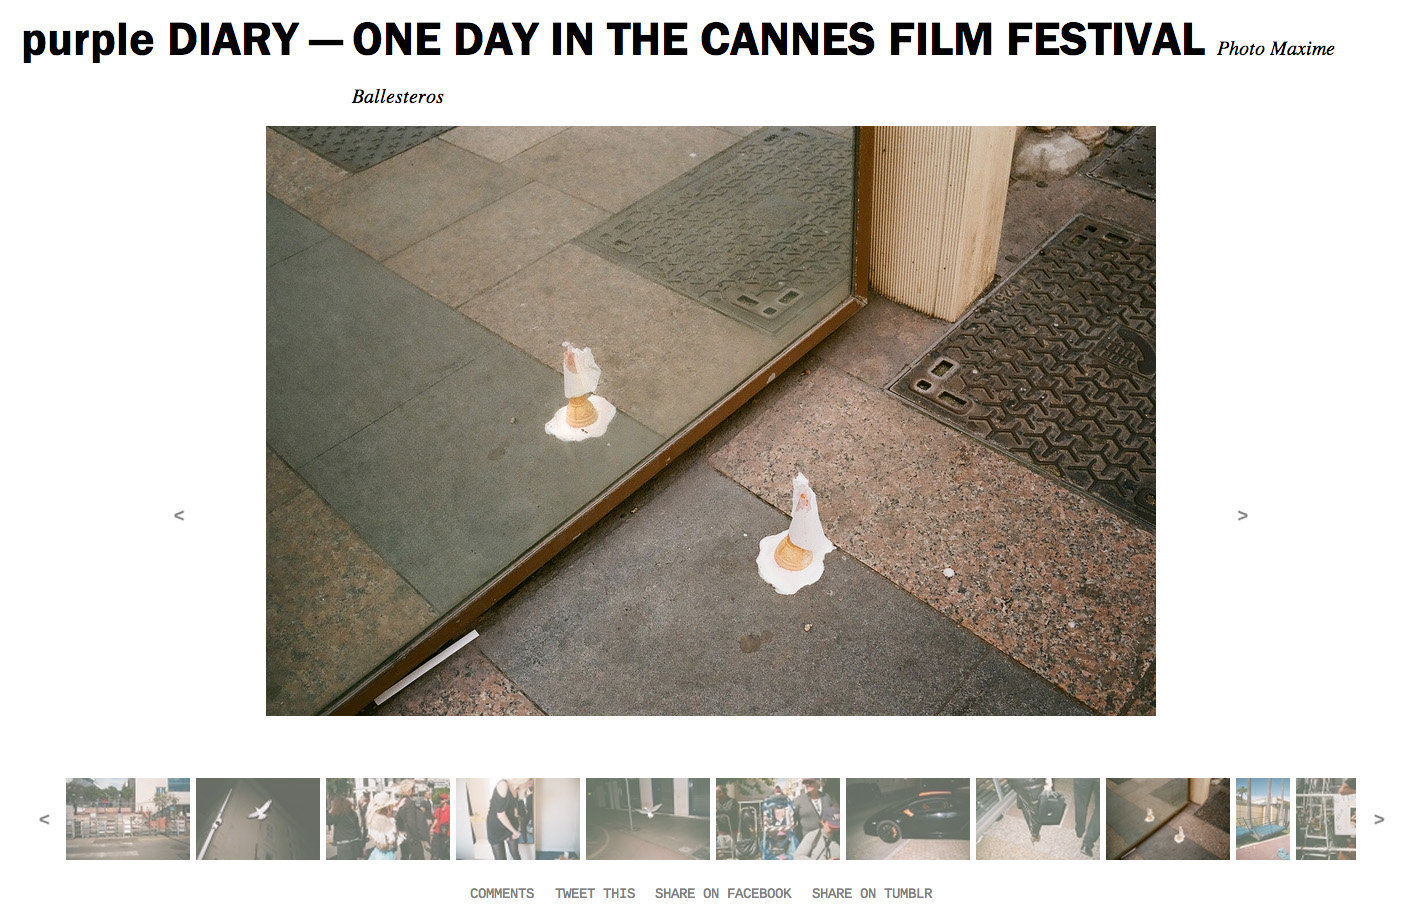 purple DIARY   ONE DAY IN THE CANNES FILM FESTIVAL.jpg